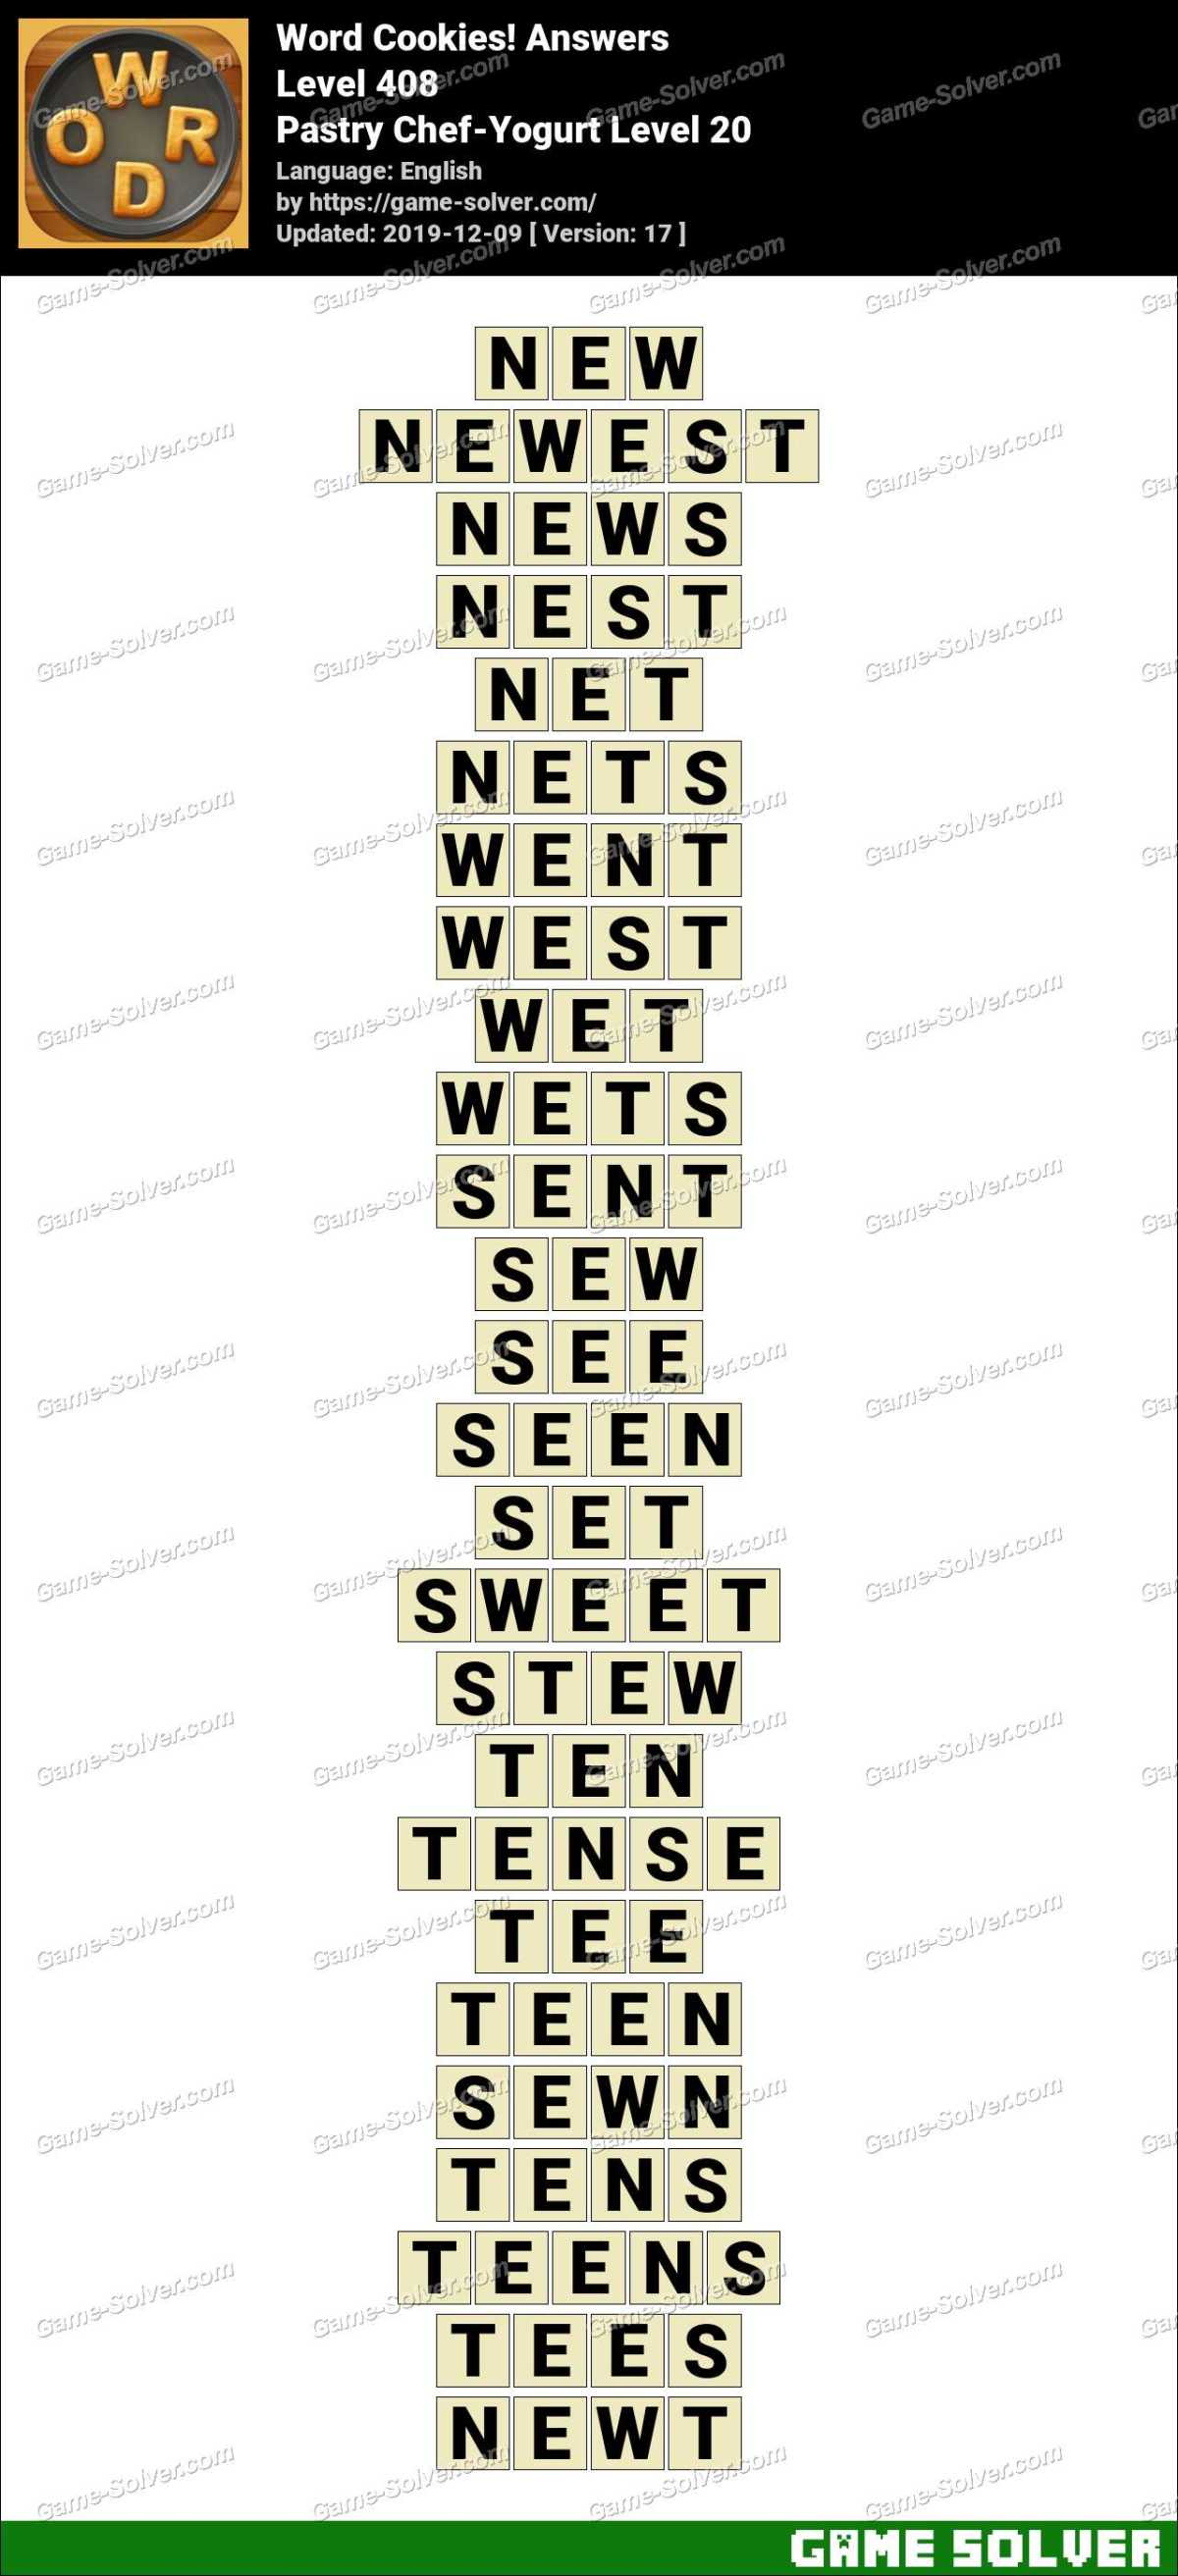 Word Cookies Pastry Chef-Yogurt Level 20 Answers